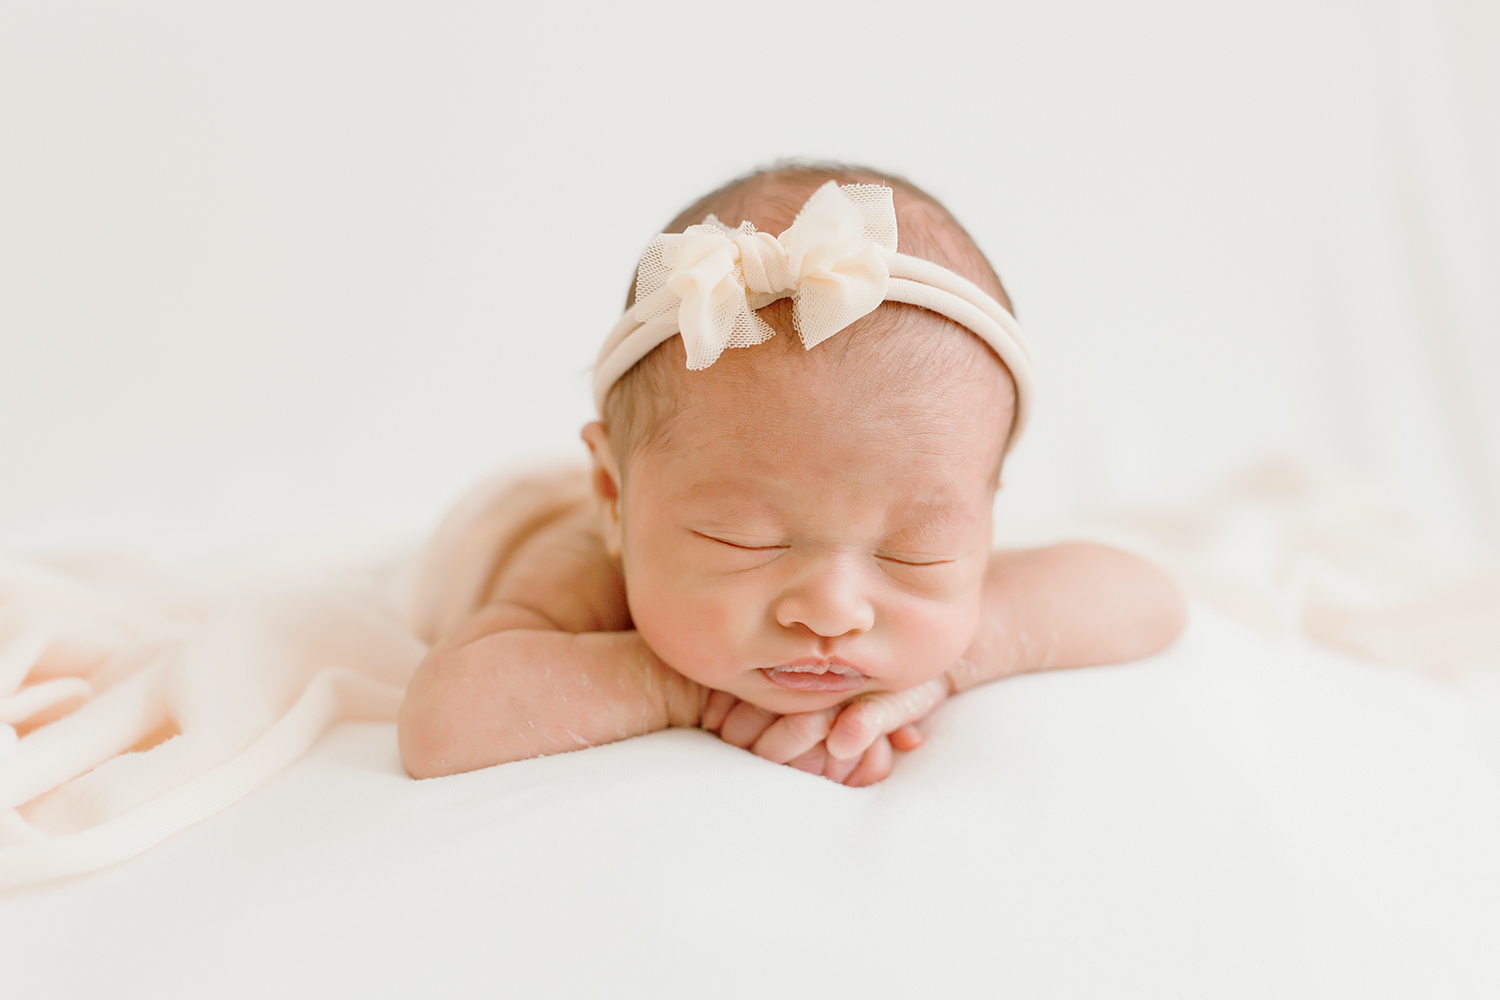 Northern-VA-Newborn-Photographer-Northern-VA-Newborn-Photographer-251.jpg